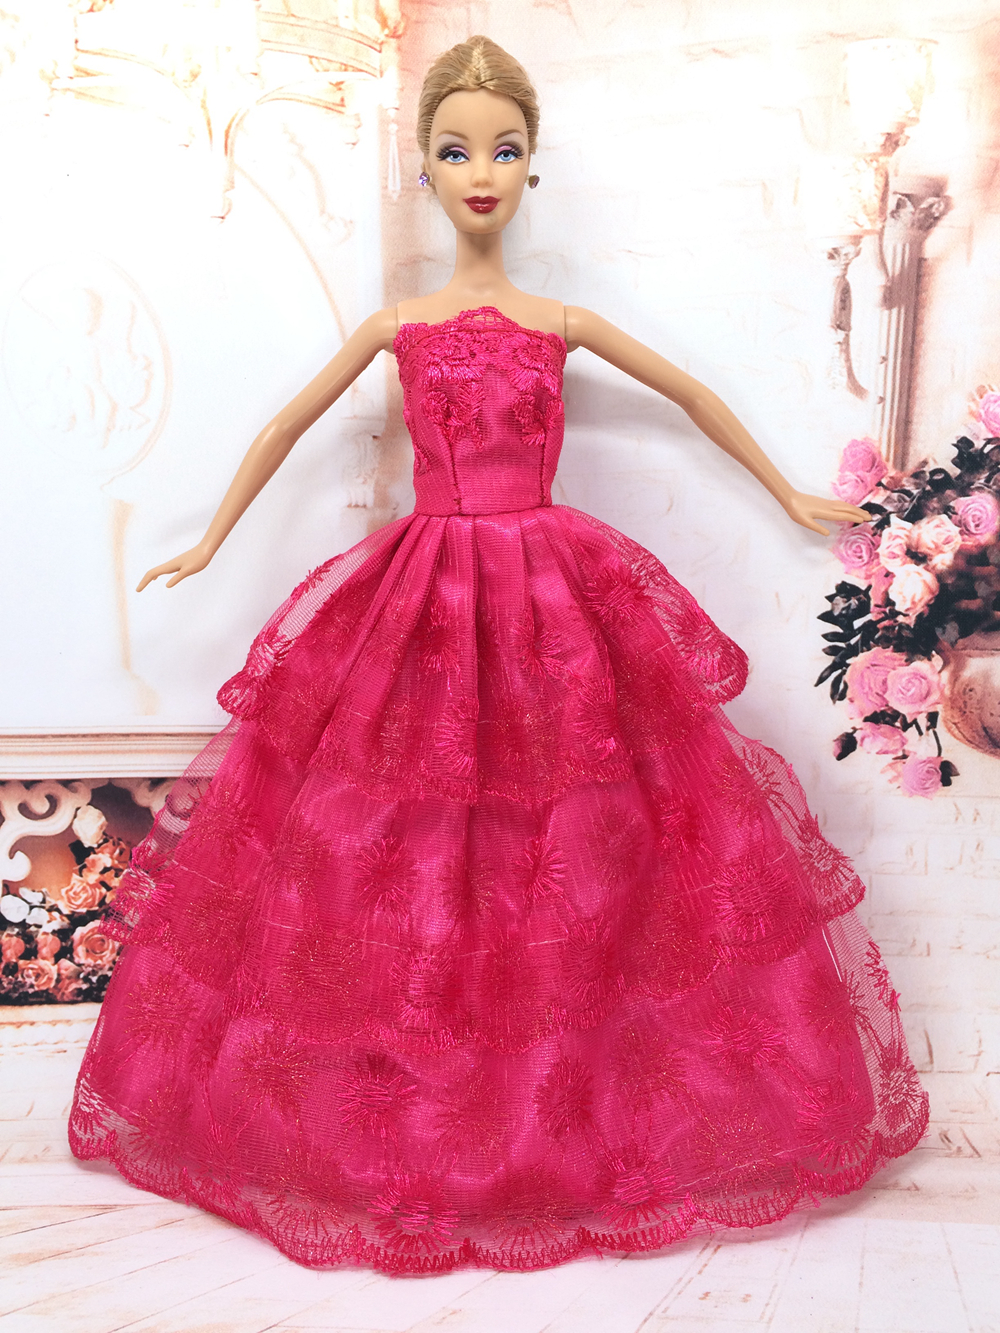 Nk One Pcs Princess Doll Wedding Dress Noble Party Gown